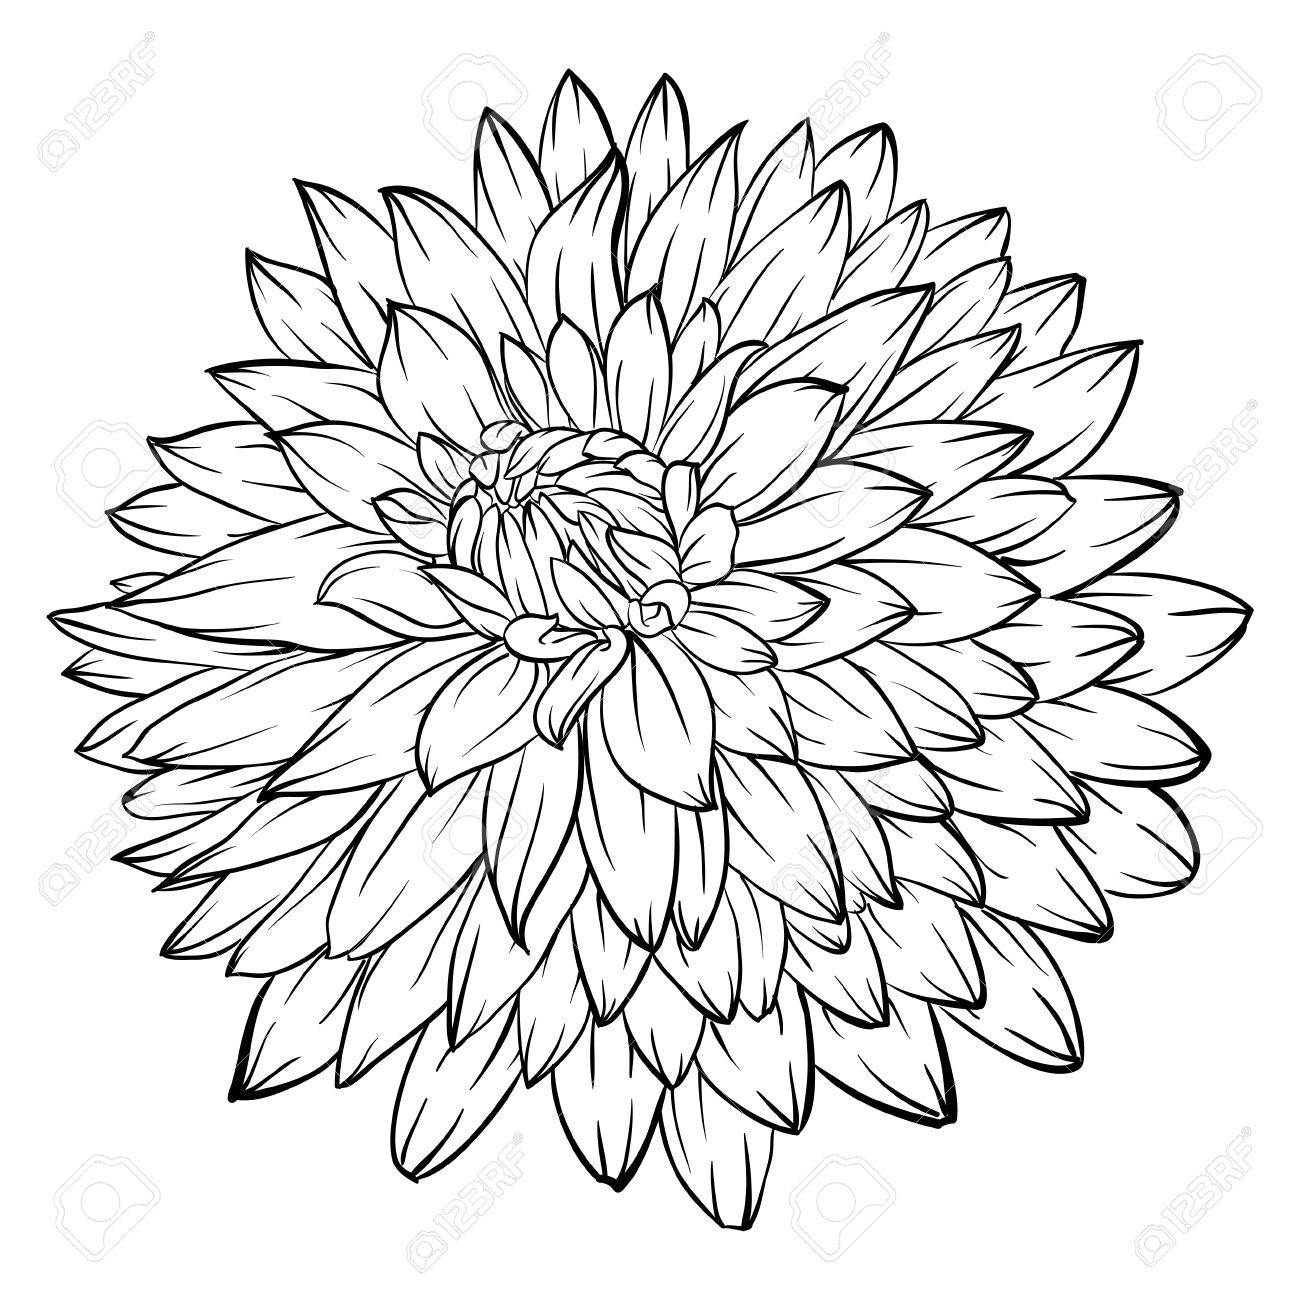 Beautiful Monochrome Black And White Dahlia Flower Isolated On Royalty Free Cliparts Vectors And Stock Illustration Image 50874455